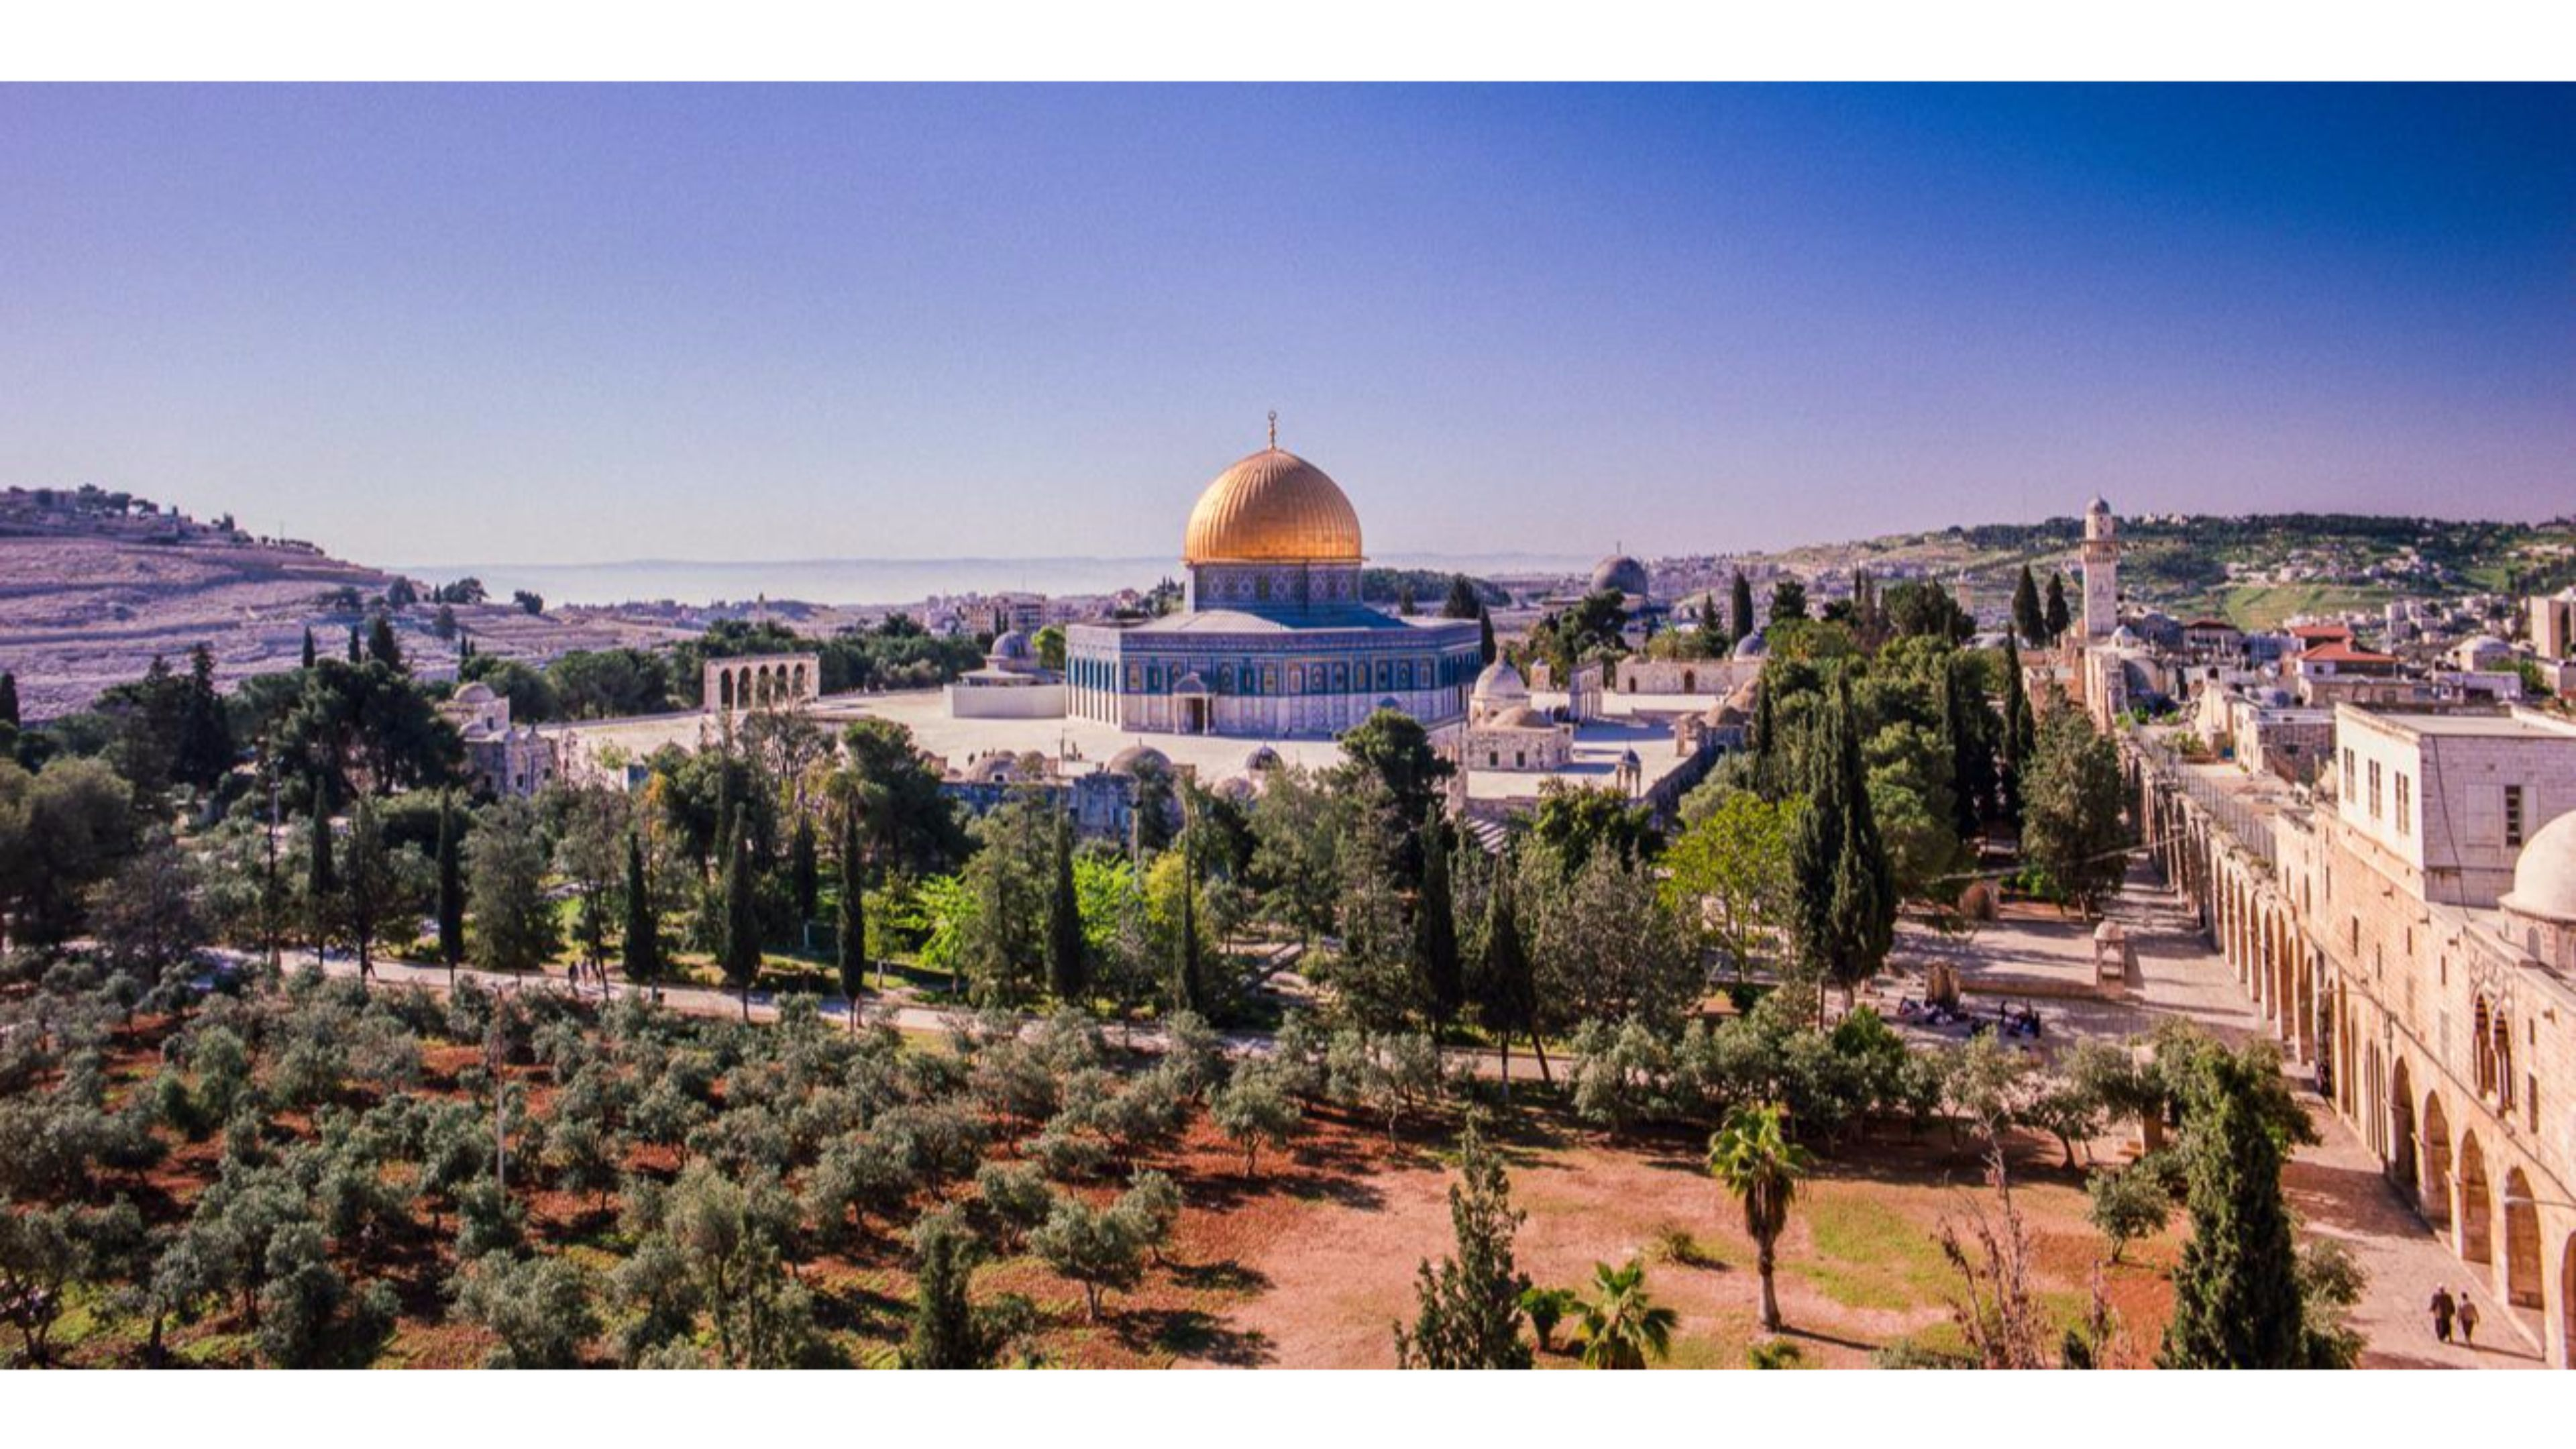 Jerusalem Wallpapers and Background Images   stmednet 3840x2160